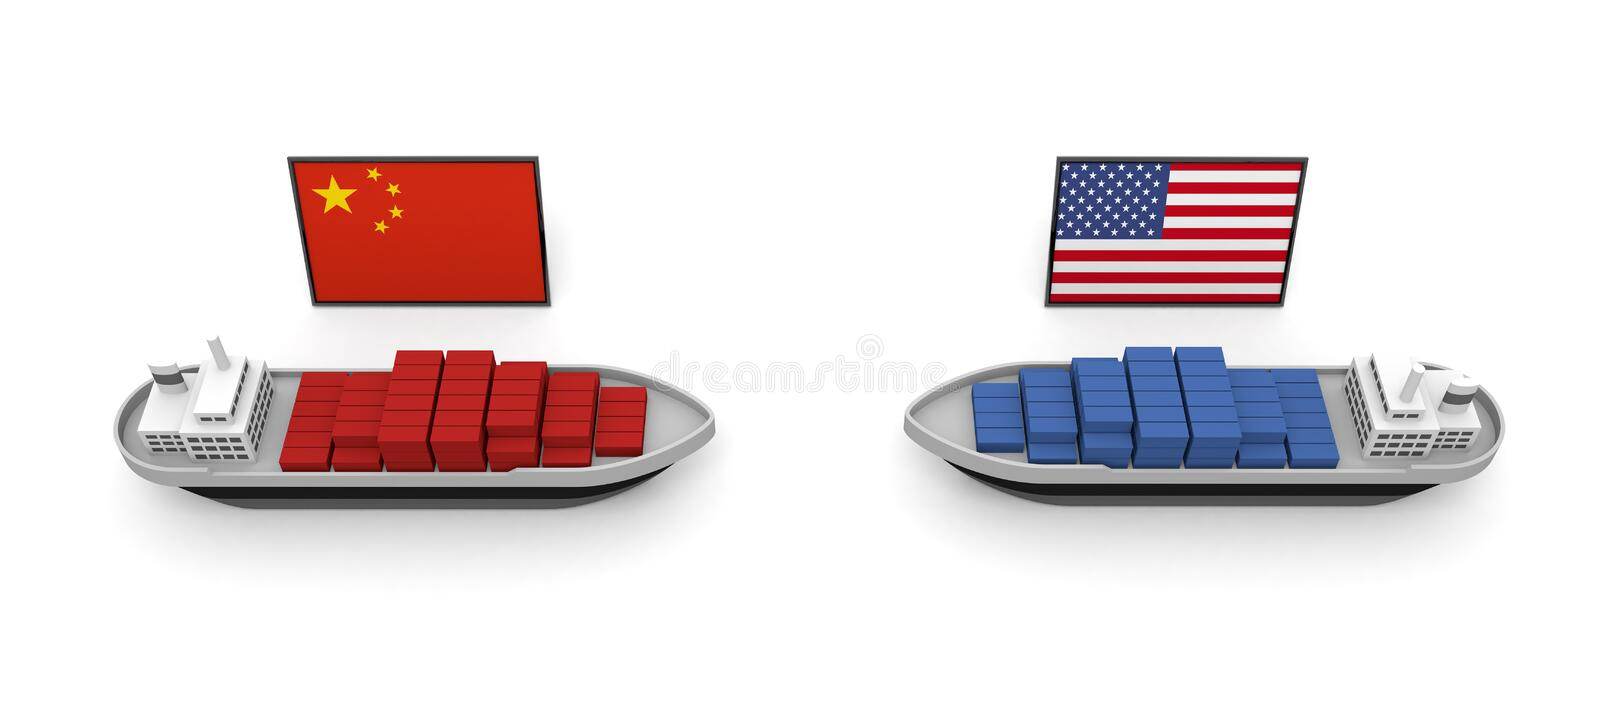 America China Trade Problem Tariff 3D illustration. US-China trade issues. Trade friction takes place. Difficult problem. USA map and flag. China map and flag stock illustration